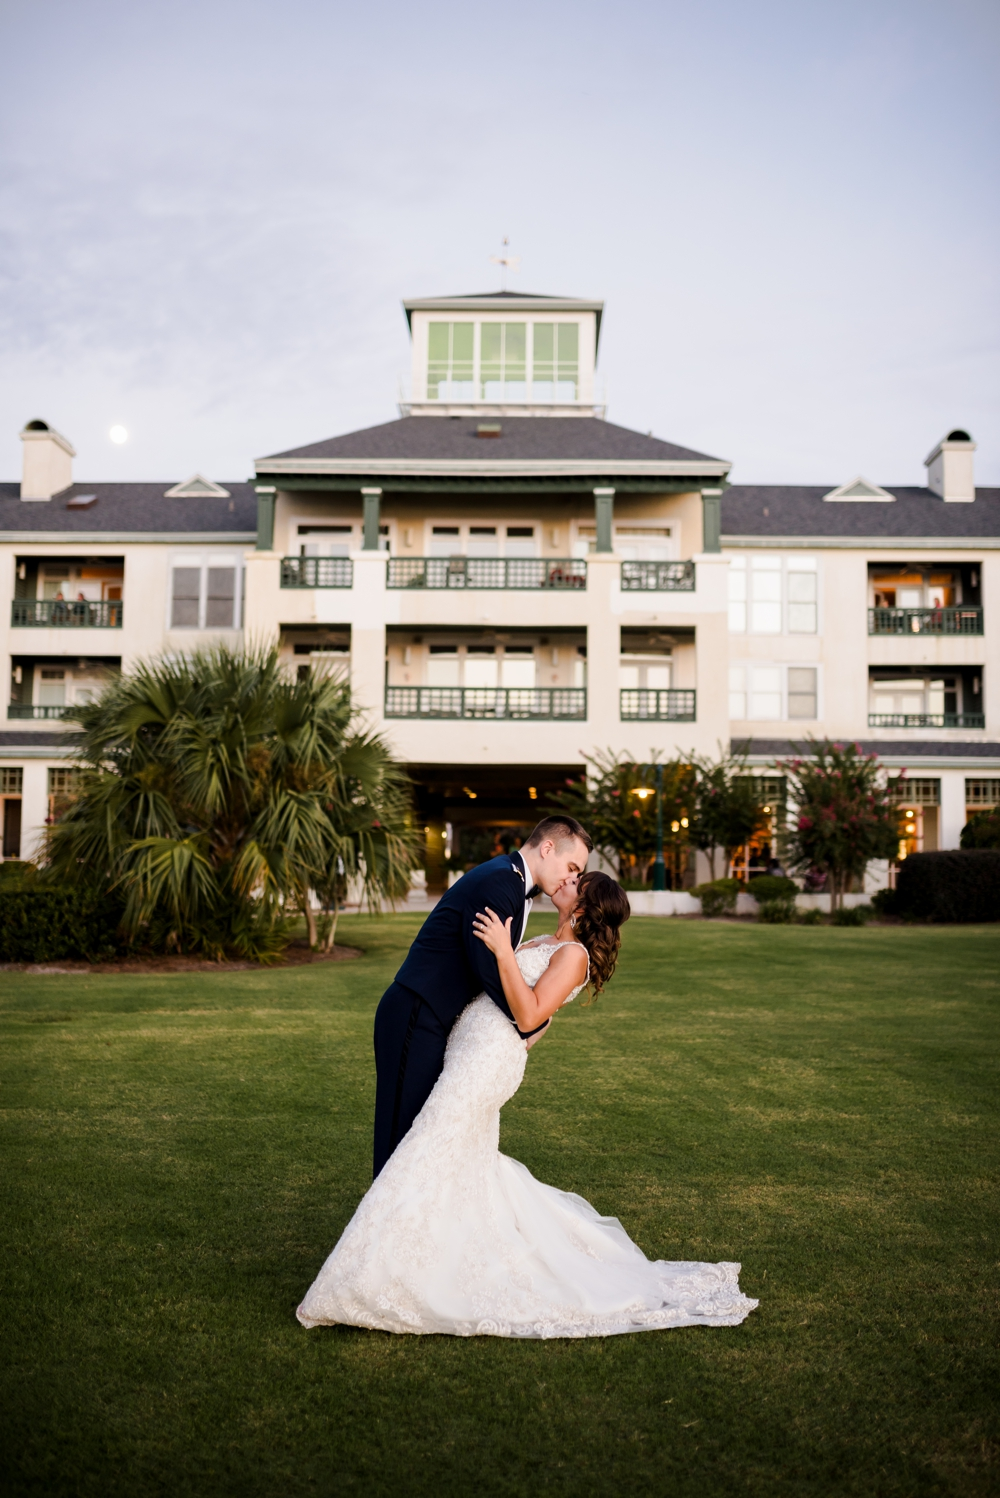 wallin-florida-wedding-photographer-kiersten-grant-172.jpg